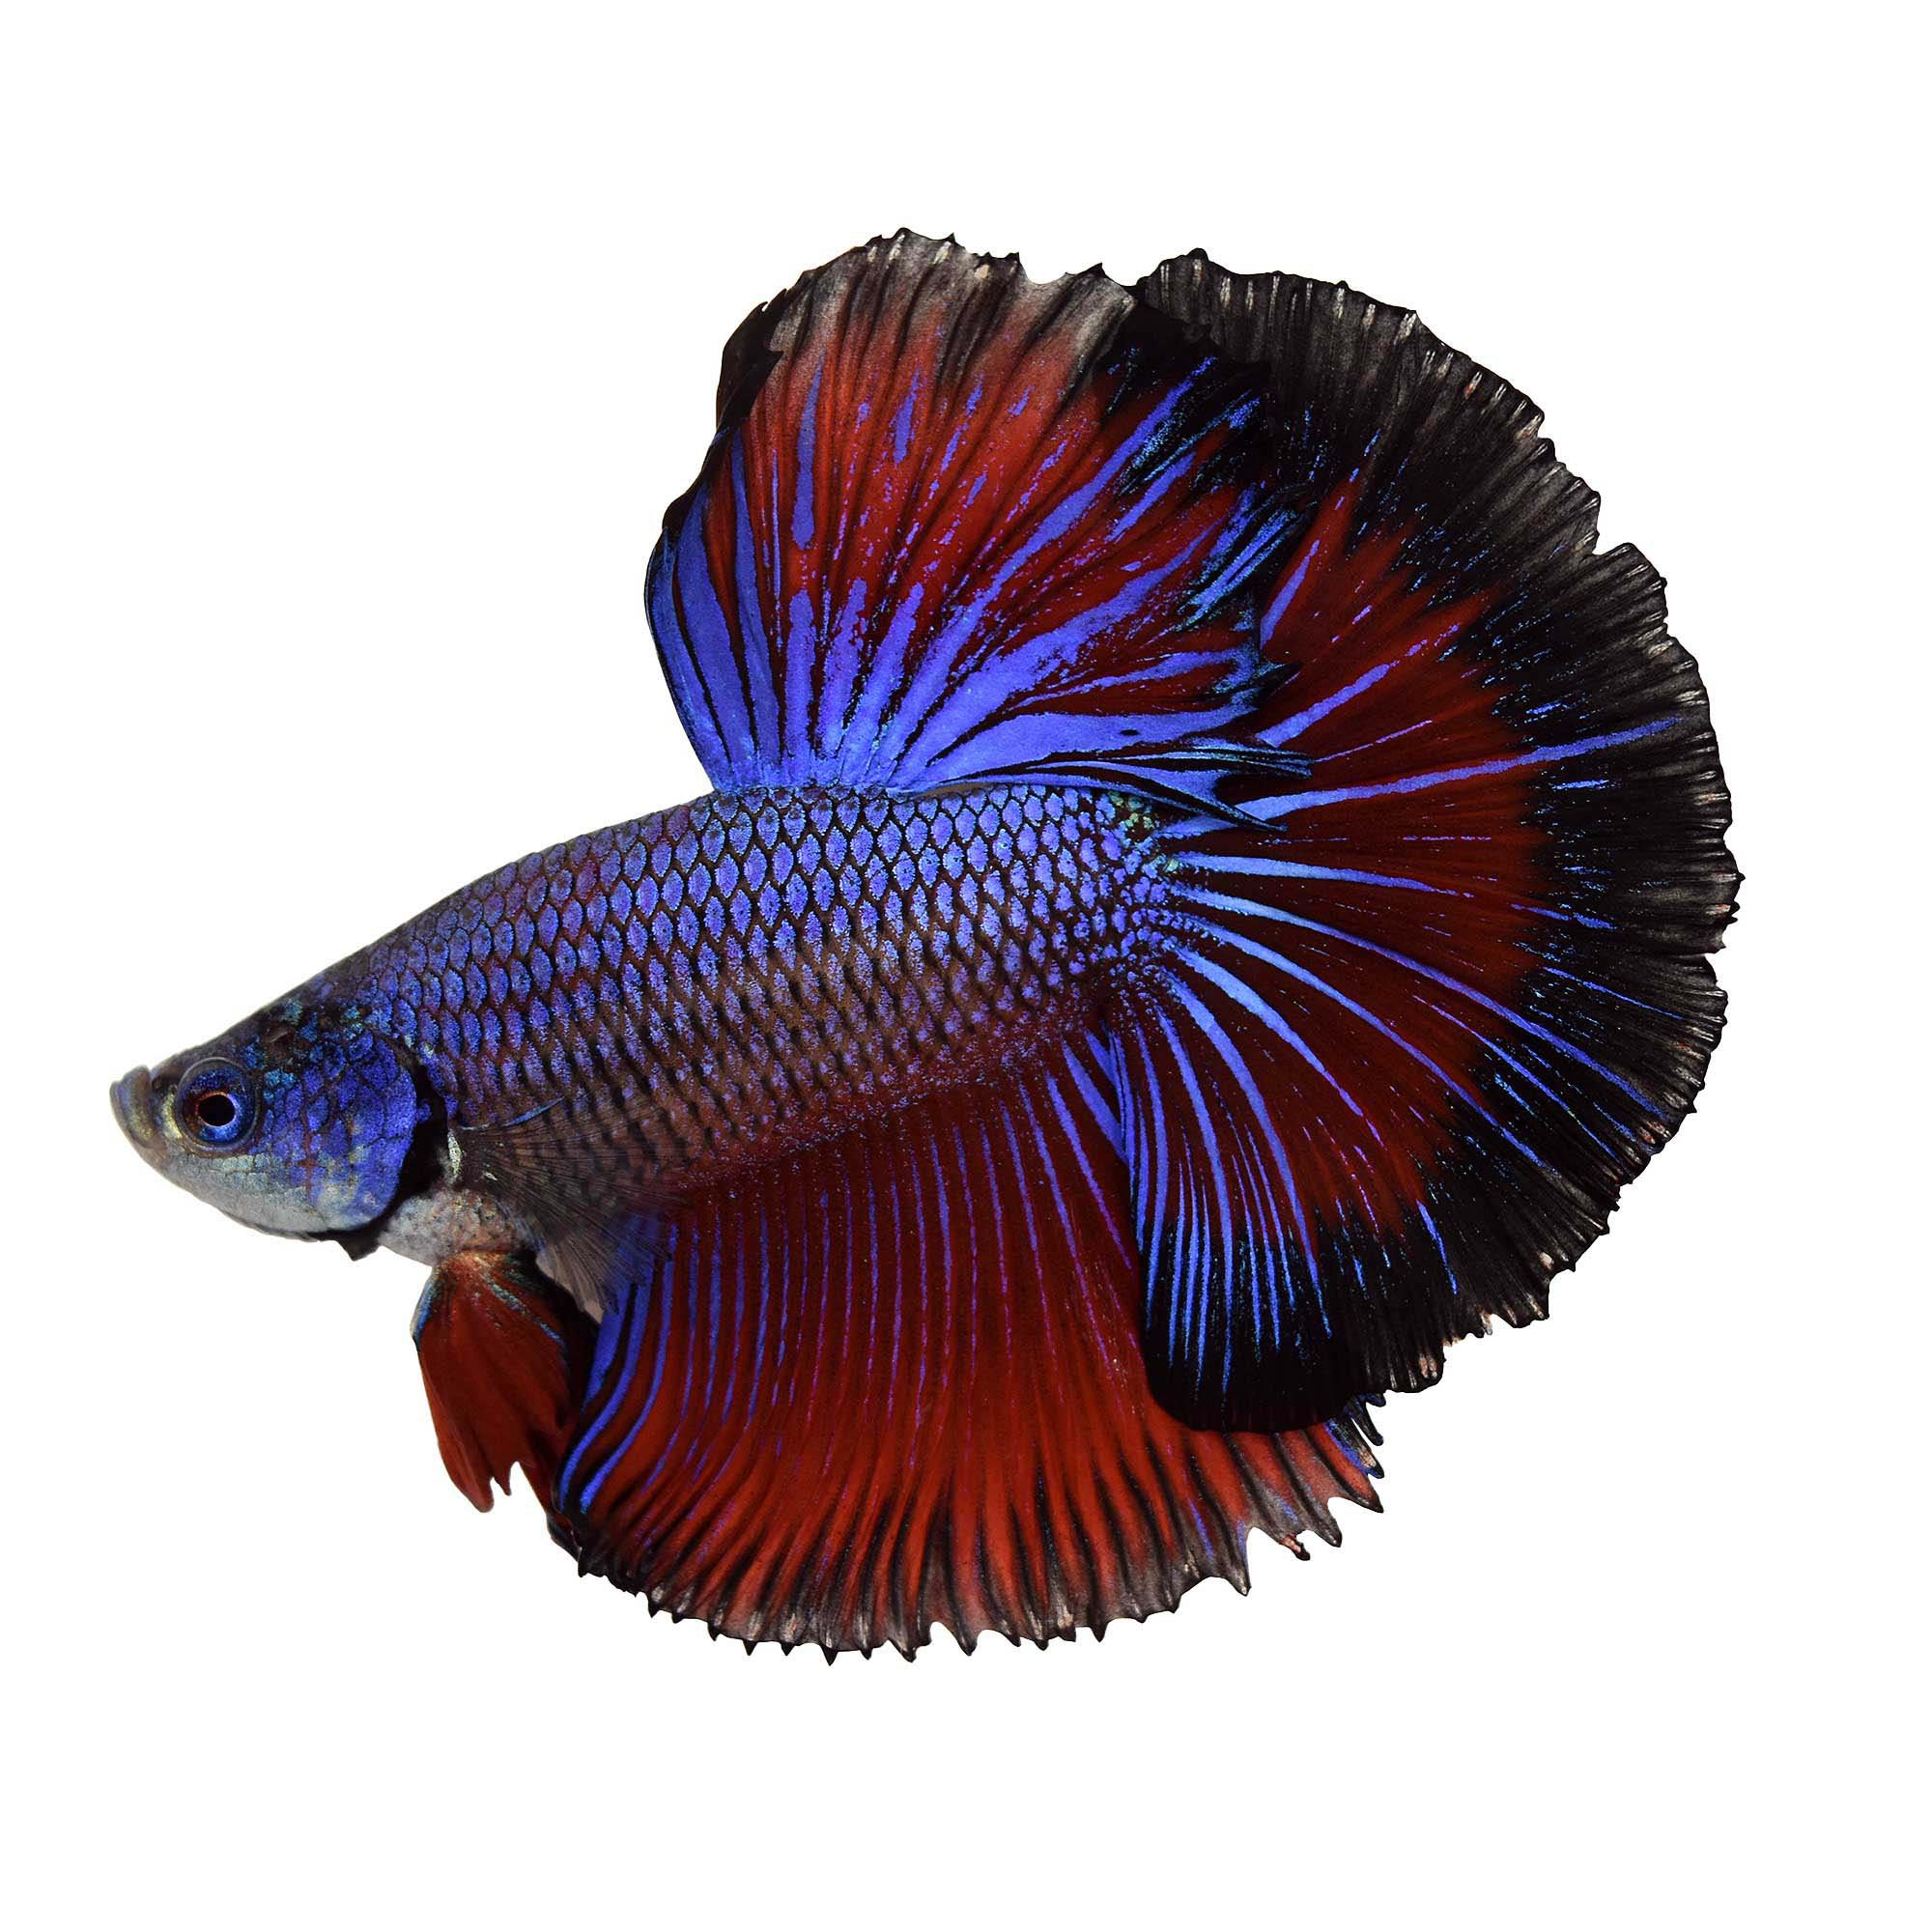 Male halfmoon betta fish siamese fighting fish extra for Food for betta fish